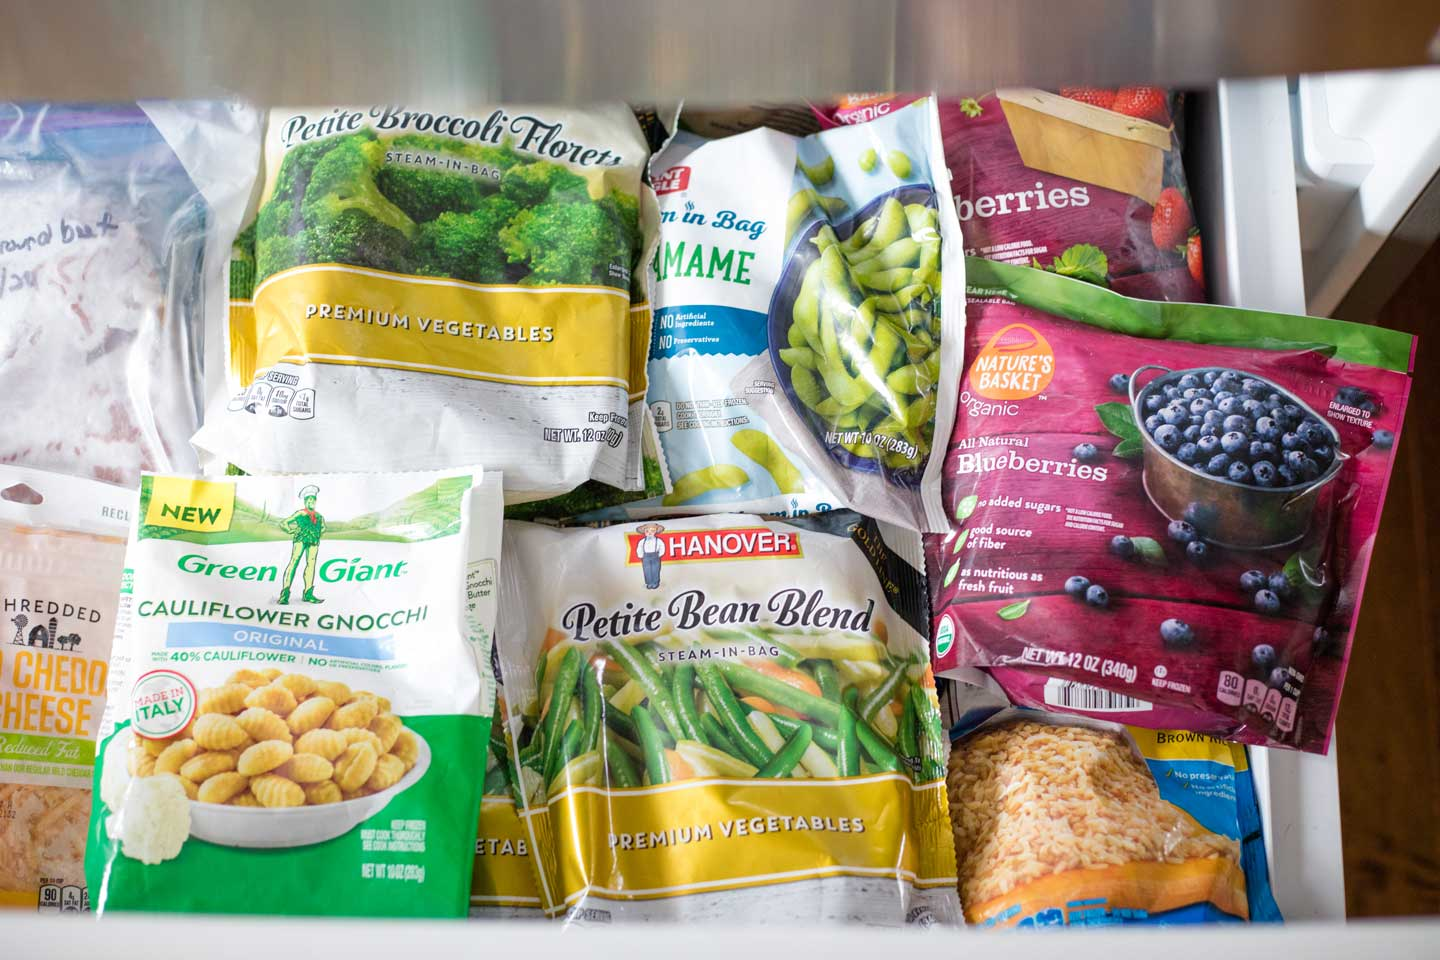 freezer items like frozen blueberries, broccoli, beans, edamame and brown rice